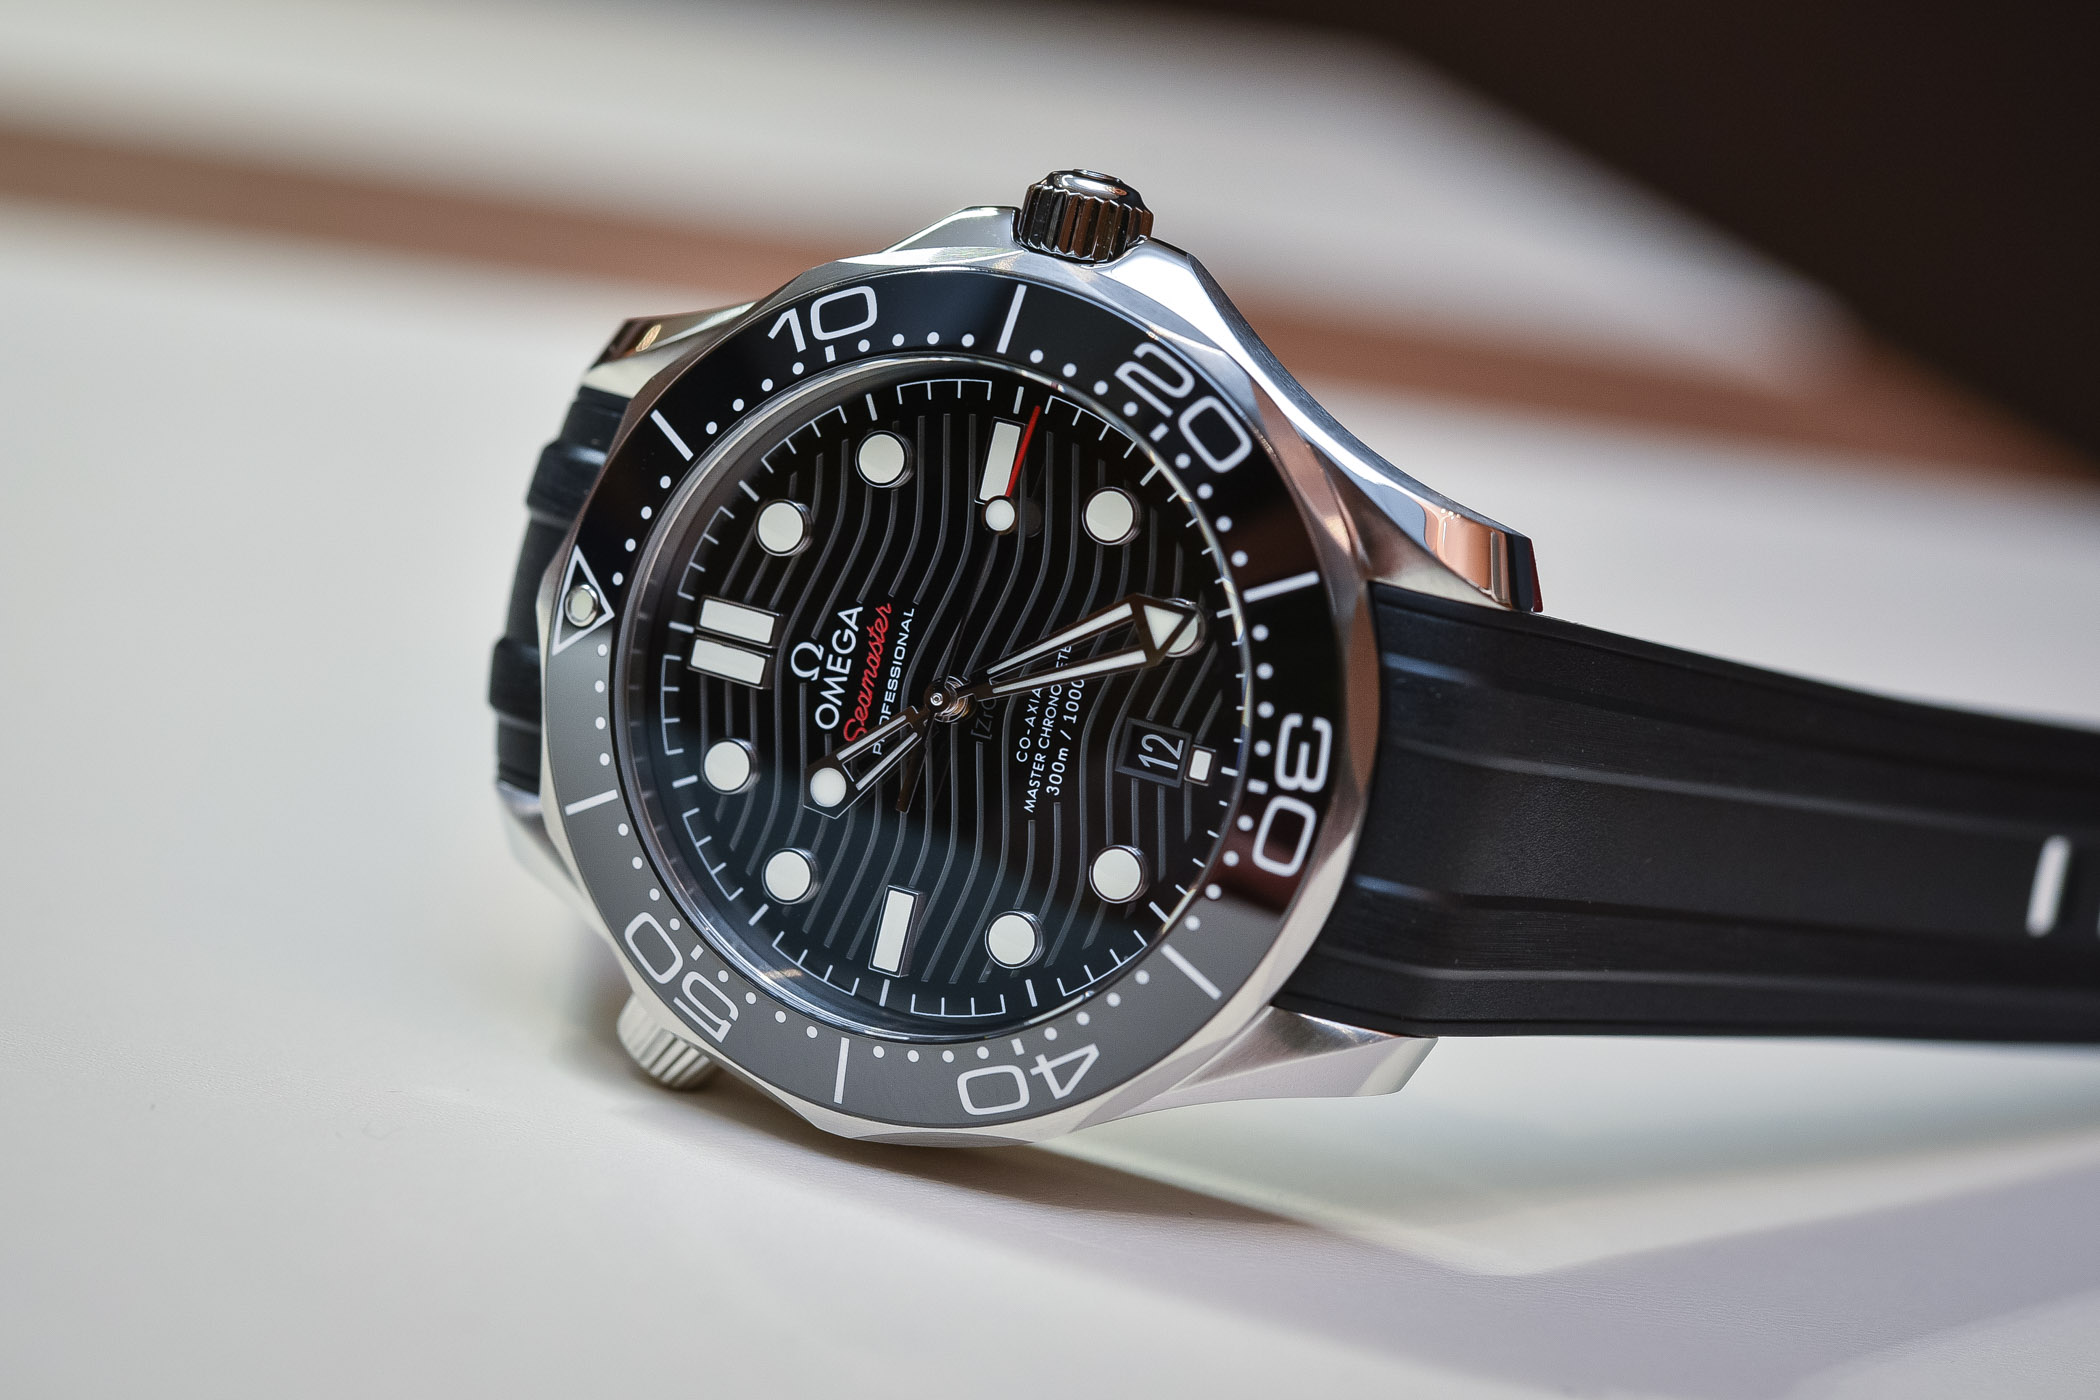 7702df60b79a Hands-On - Omega Seamaster Diver 300M Master Chronometer Baselworld ...